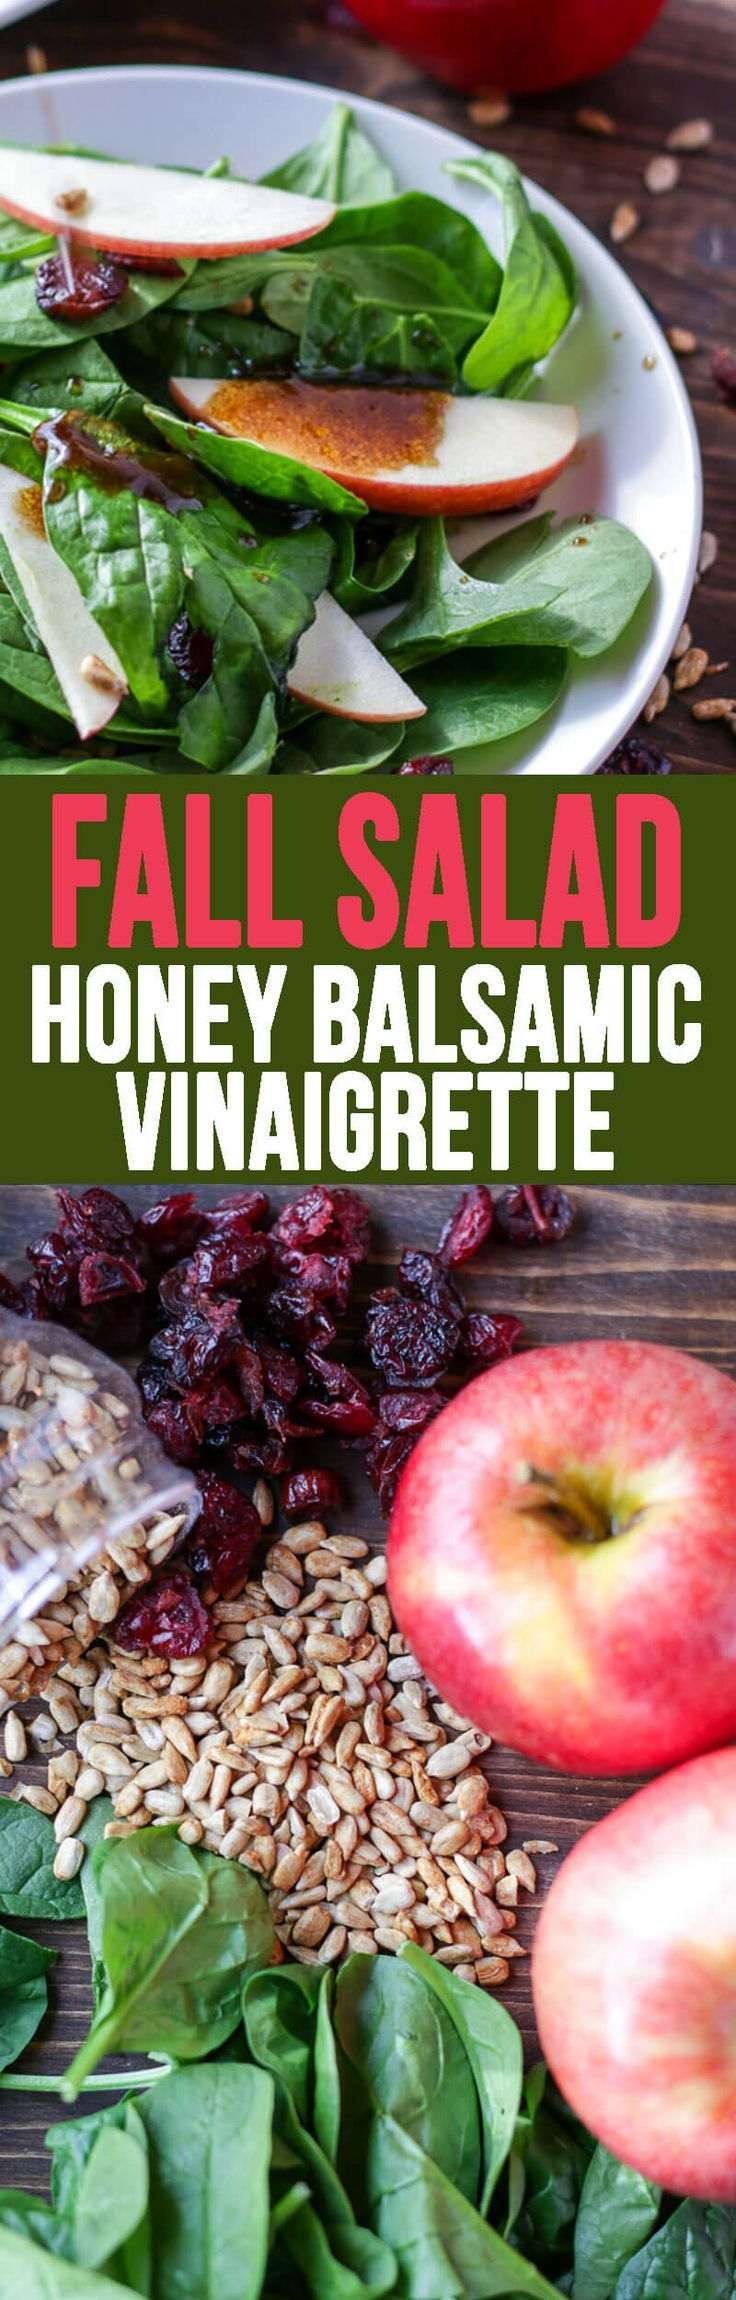 Apple Spinach Salad with Balsamic Vinegar Dressing is a Fall favorite!